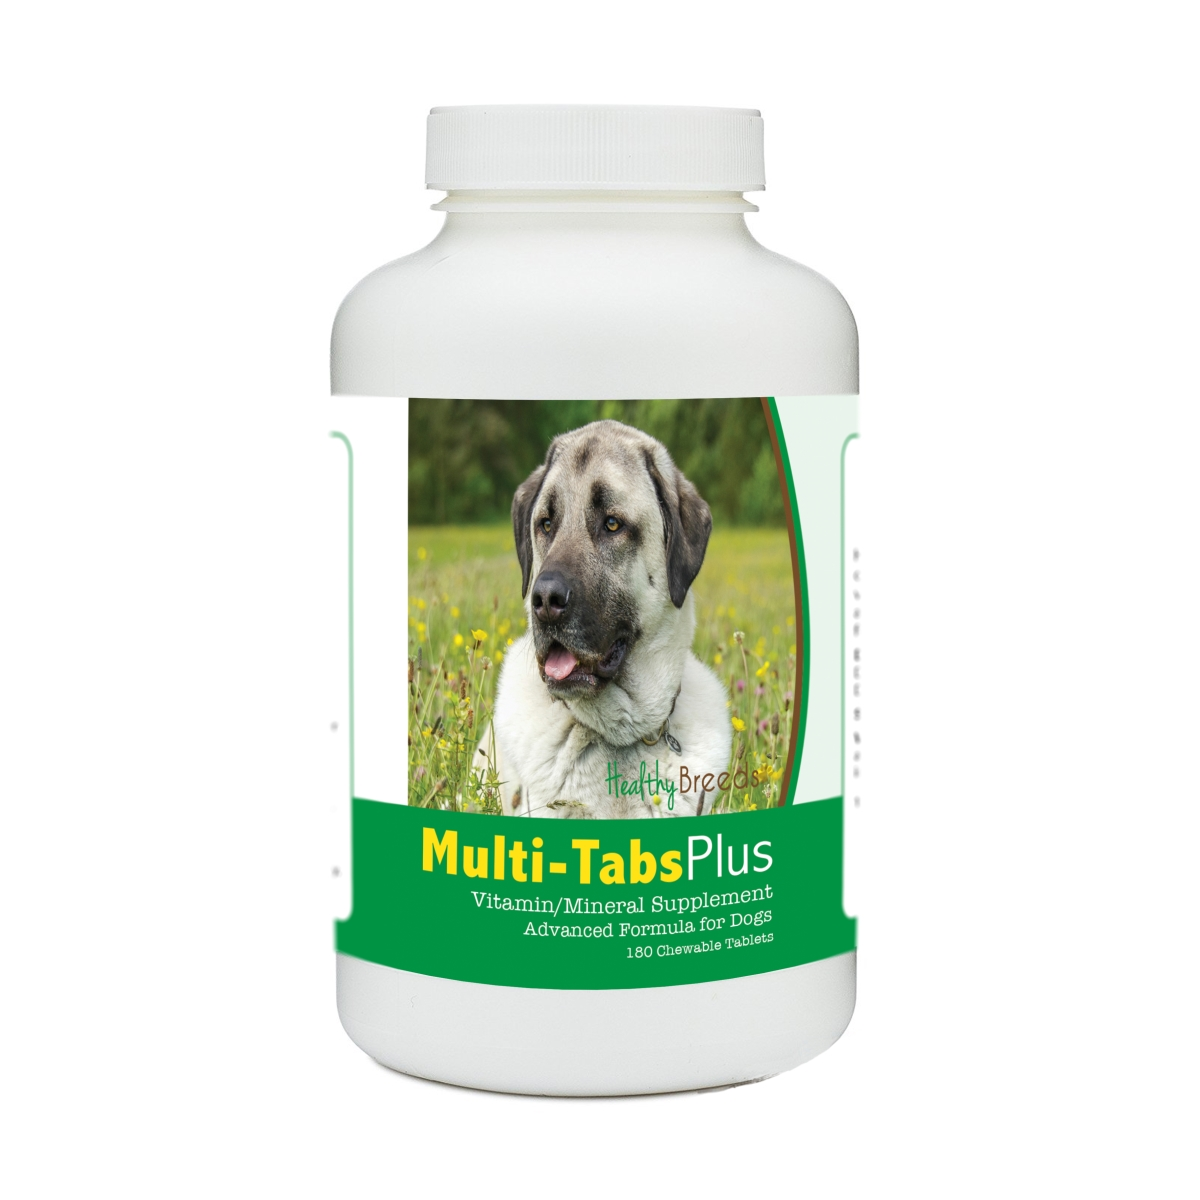 Healthy Breeds 840235178545 Anatolian Shepherd Dog Multi-Tabs Plus Chewable Tablets - 180 Count